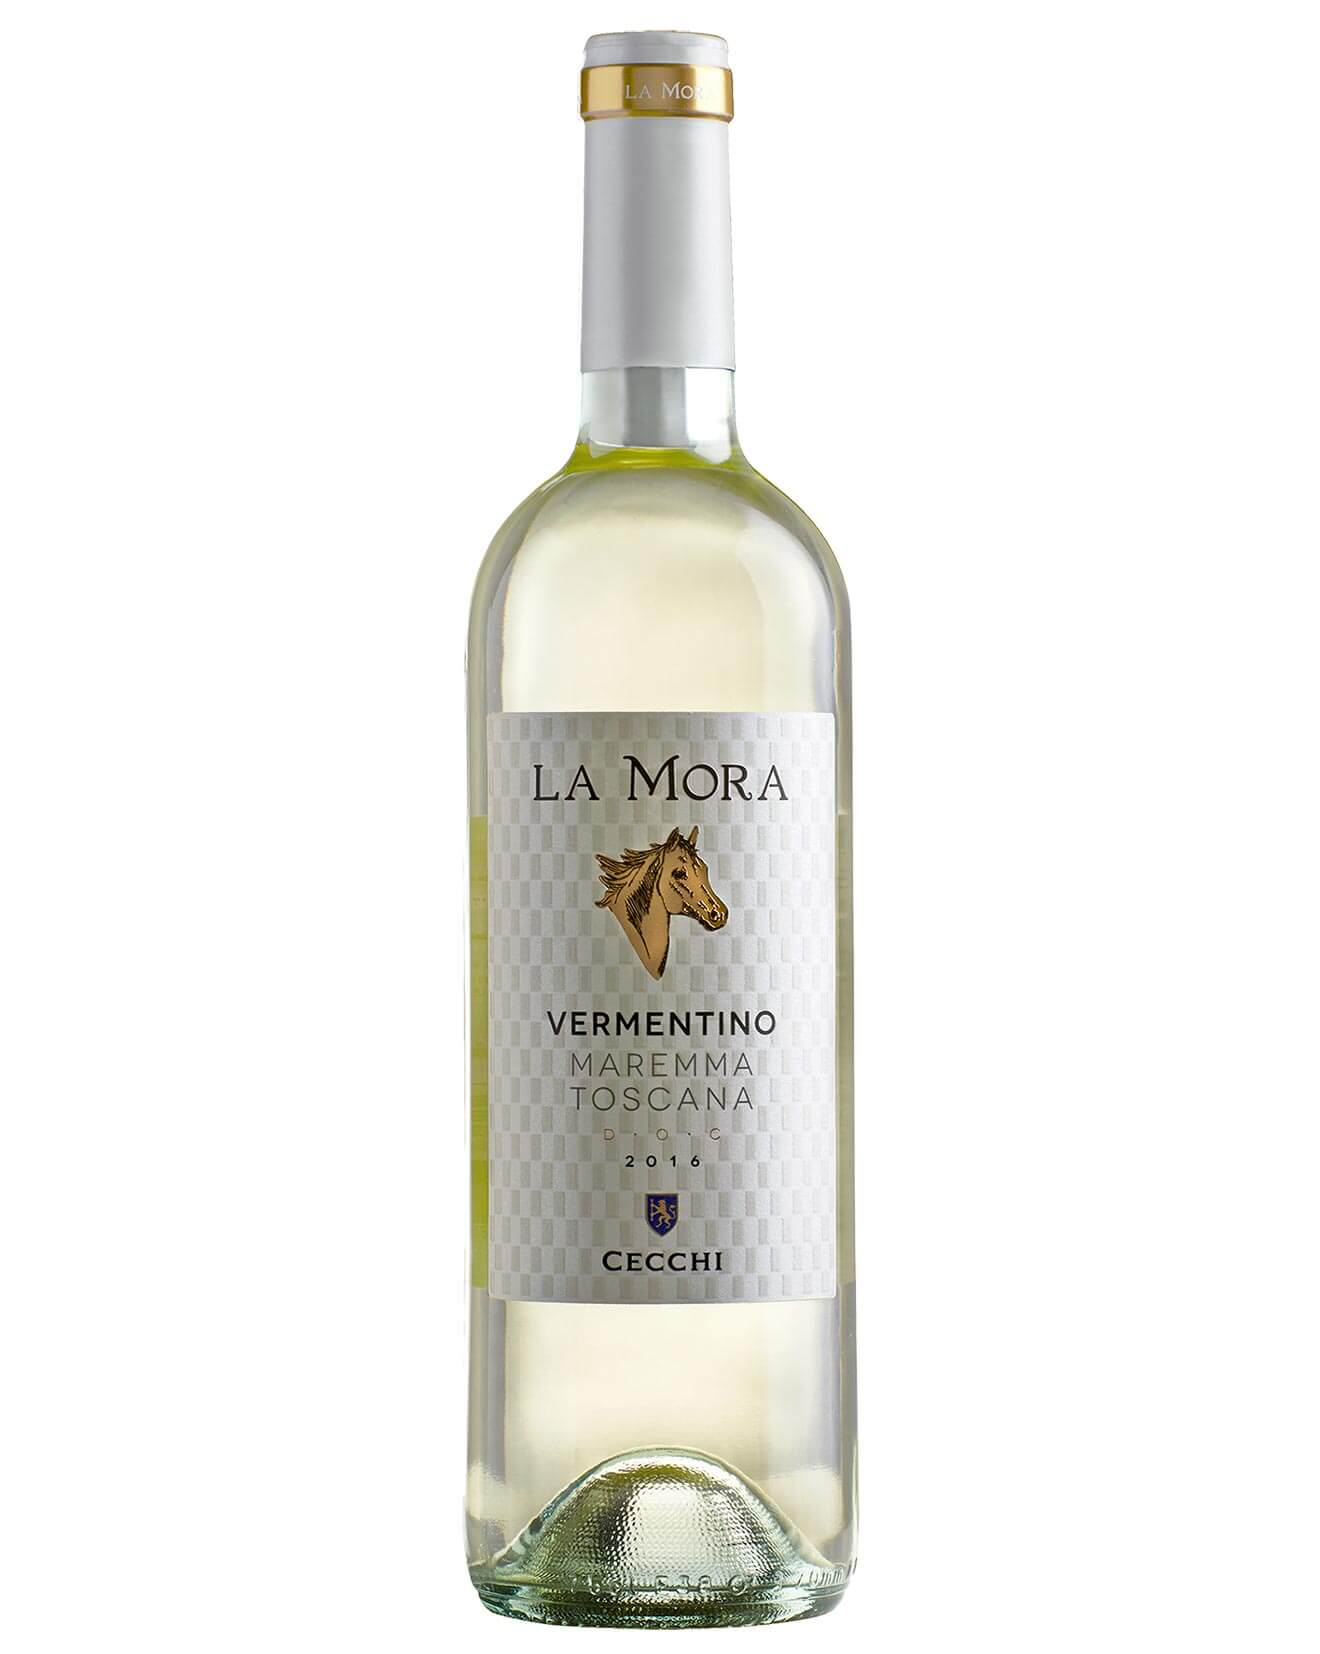 Cecchi La Mora Vermentino 2017, bottle on white